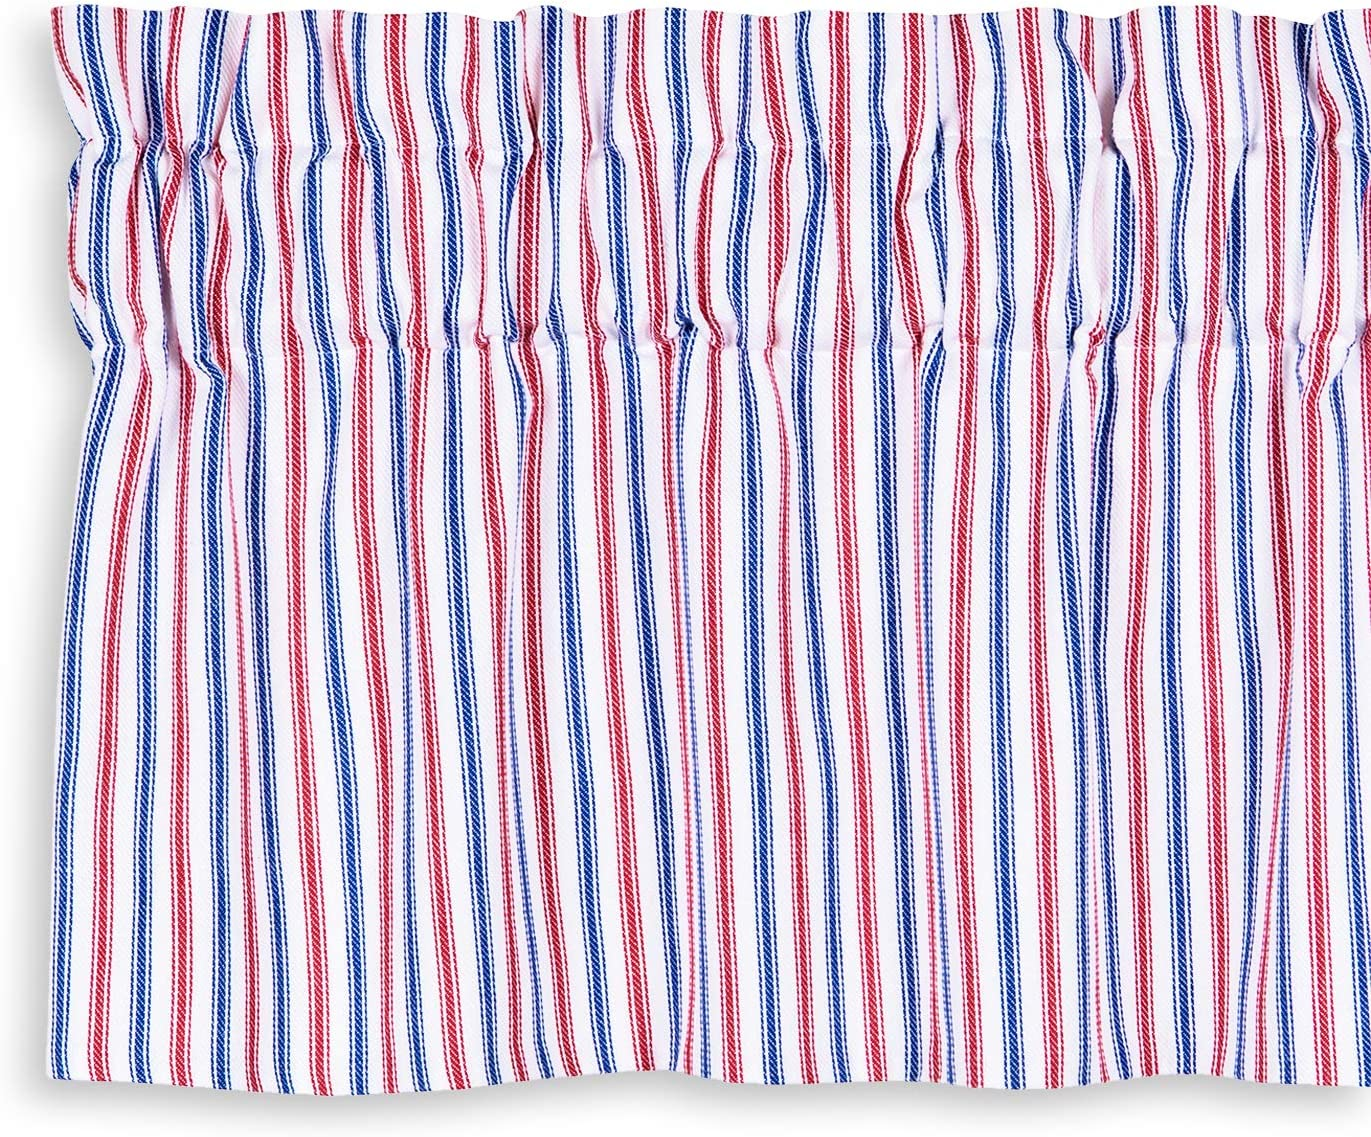 Cackleberry Home Red White and Blue Patriotic Ticking Stripe Valance Curtain Woven Cotton Lined 54 Inches W x 17 Inches L